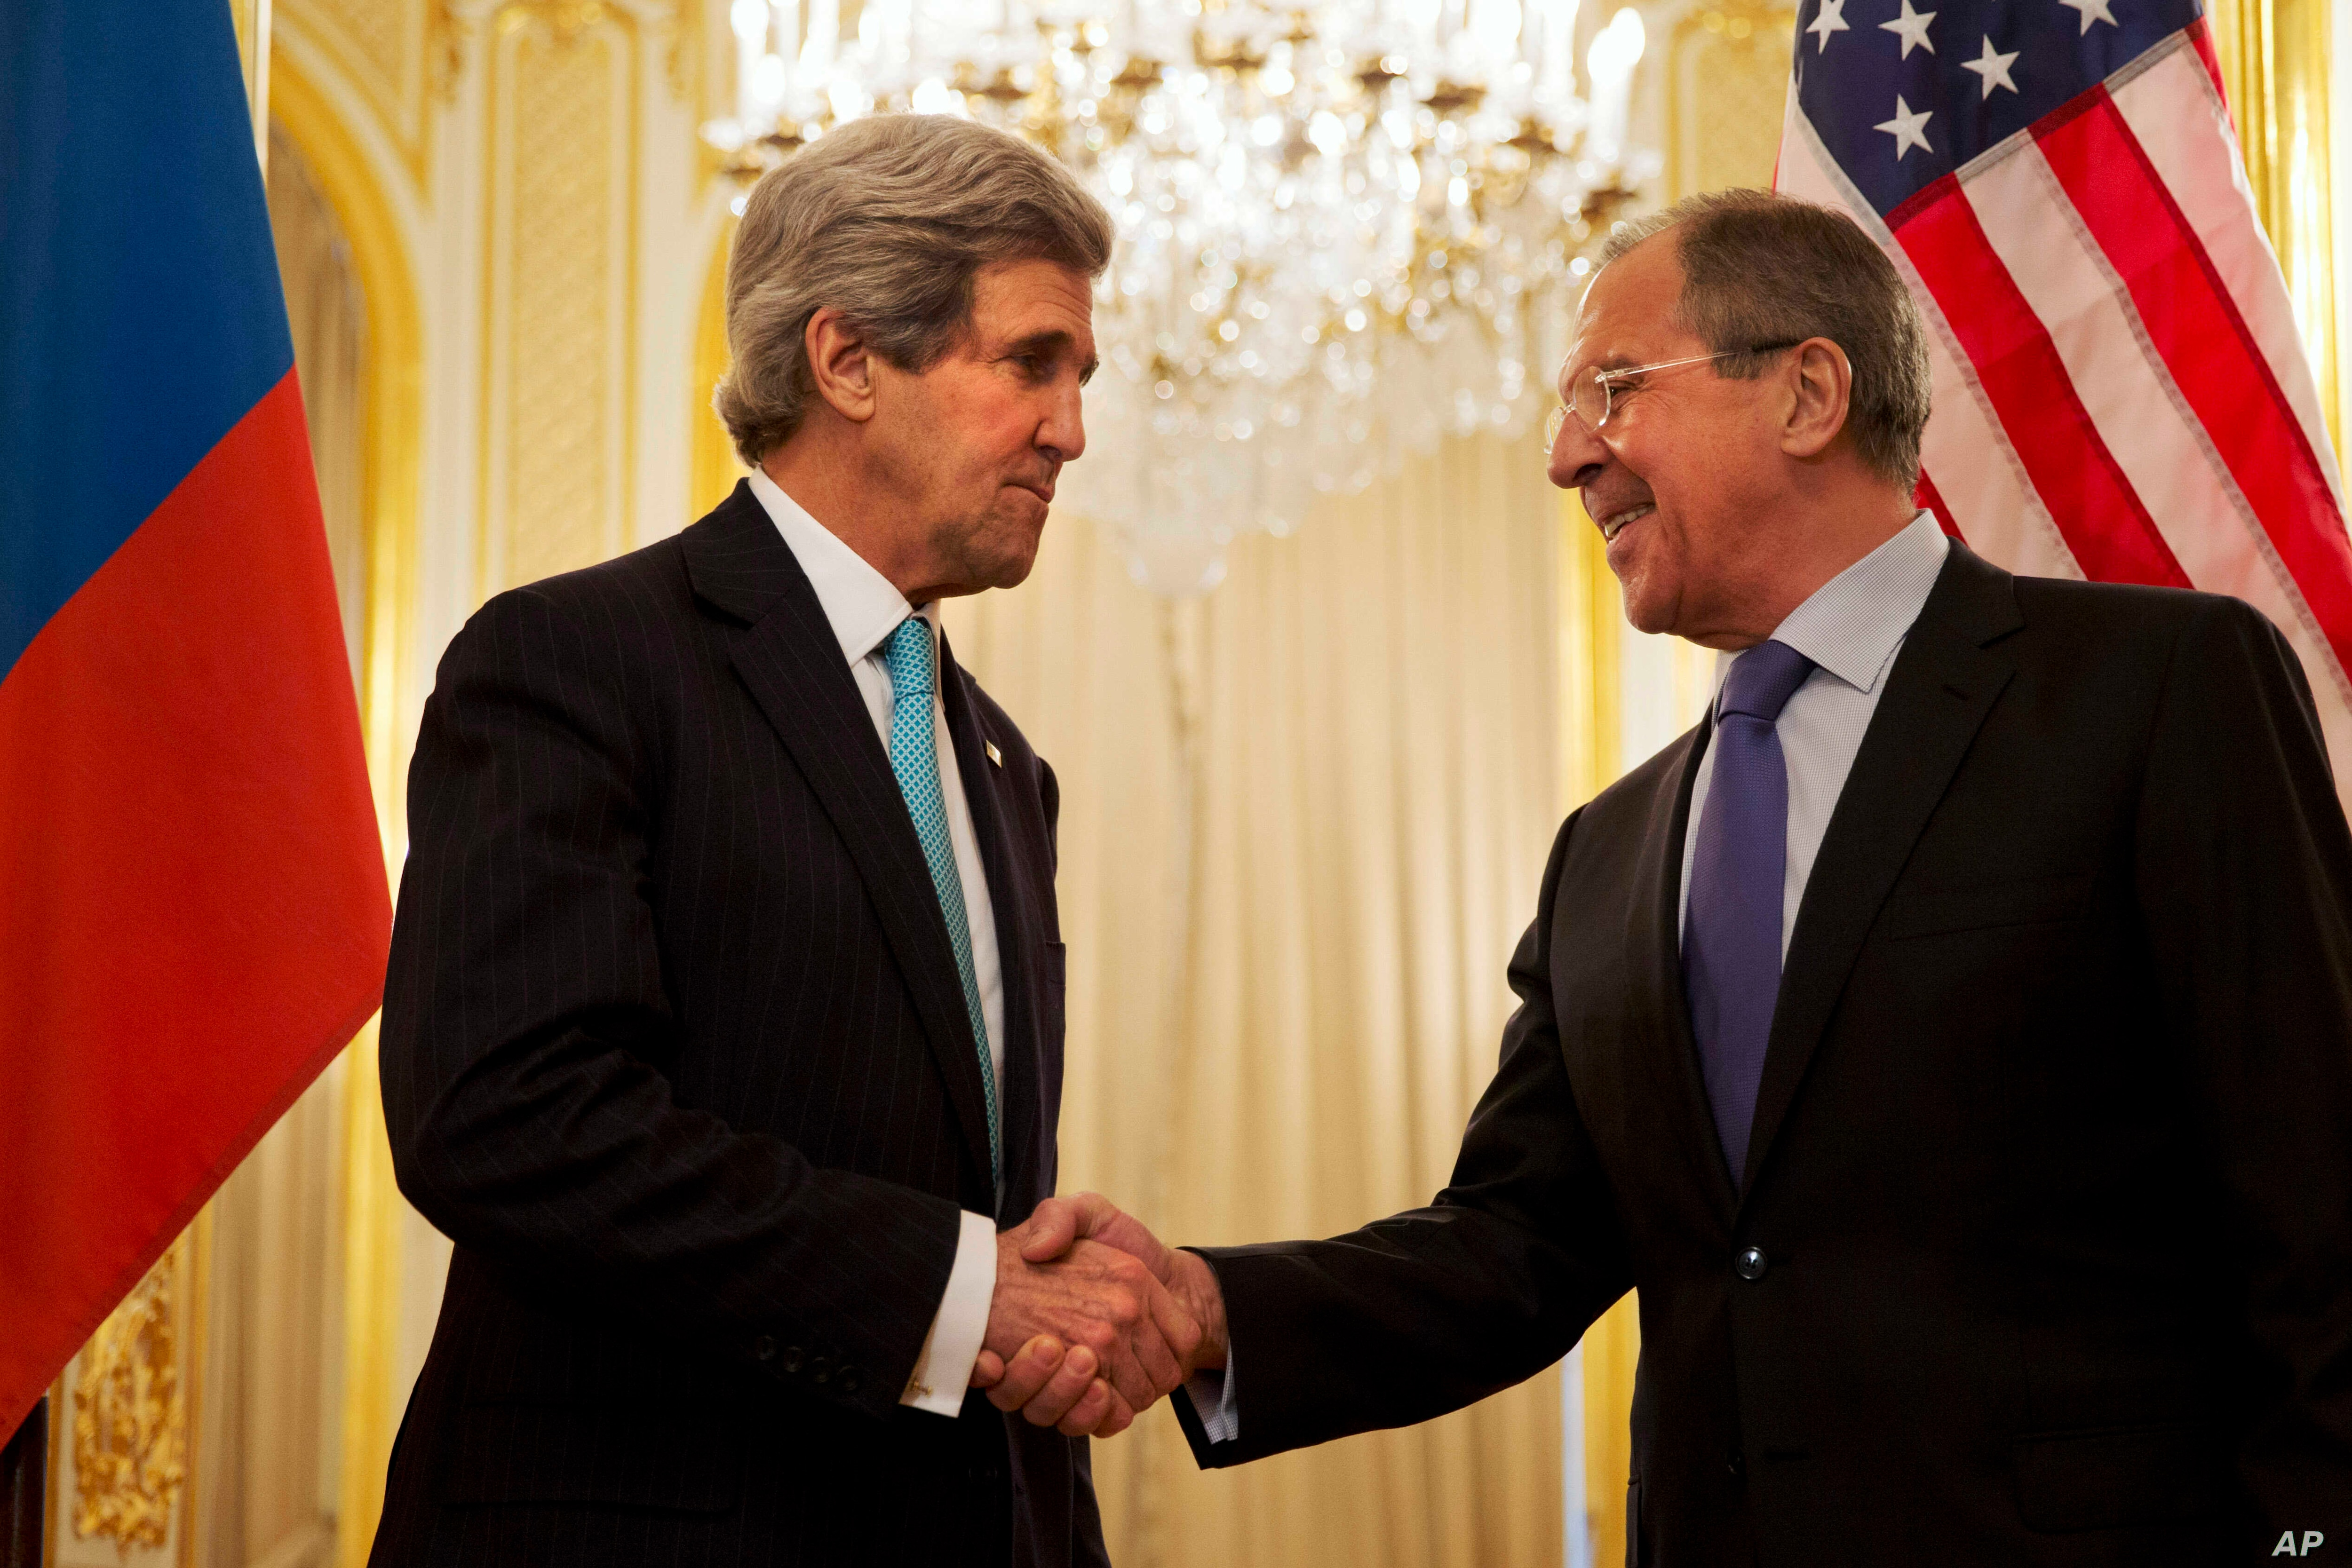 U.S. Secretary of State John Kerry, left, shakes hands with Russian Foreign Minister Sergey Lavrov before the start of their meeting at the Russian Ambassador's residence about the situation in Ukraine, in Paris, March 30, 2014.